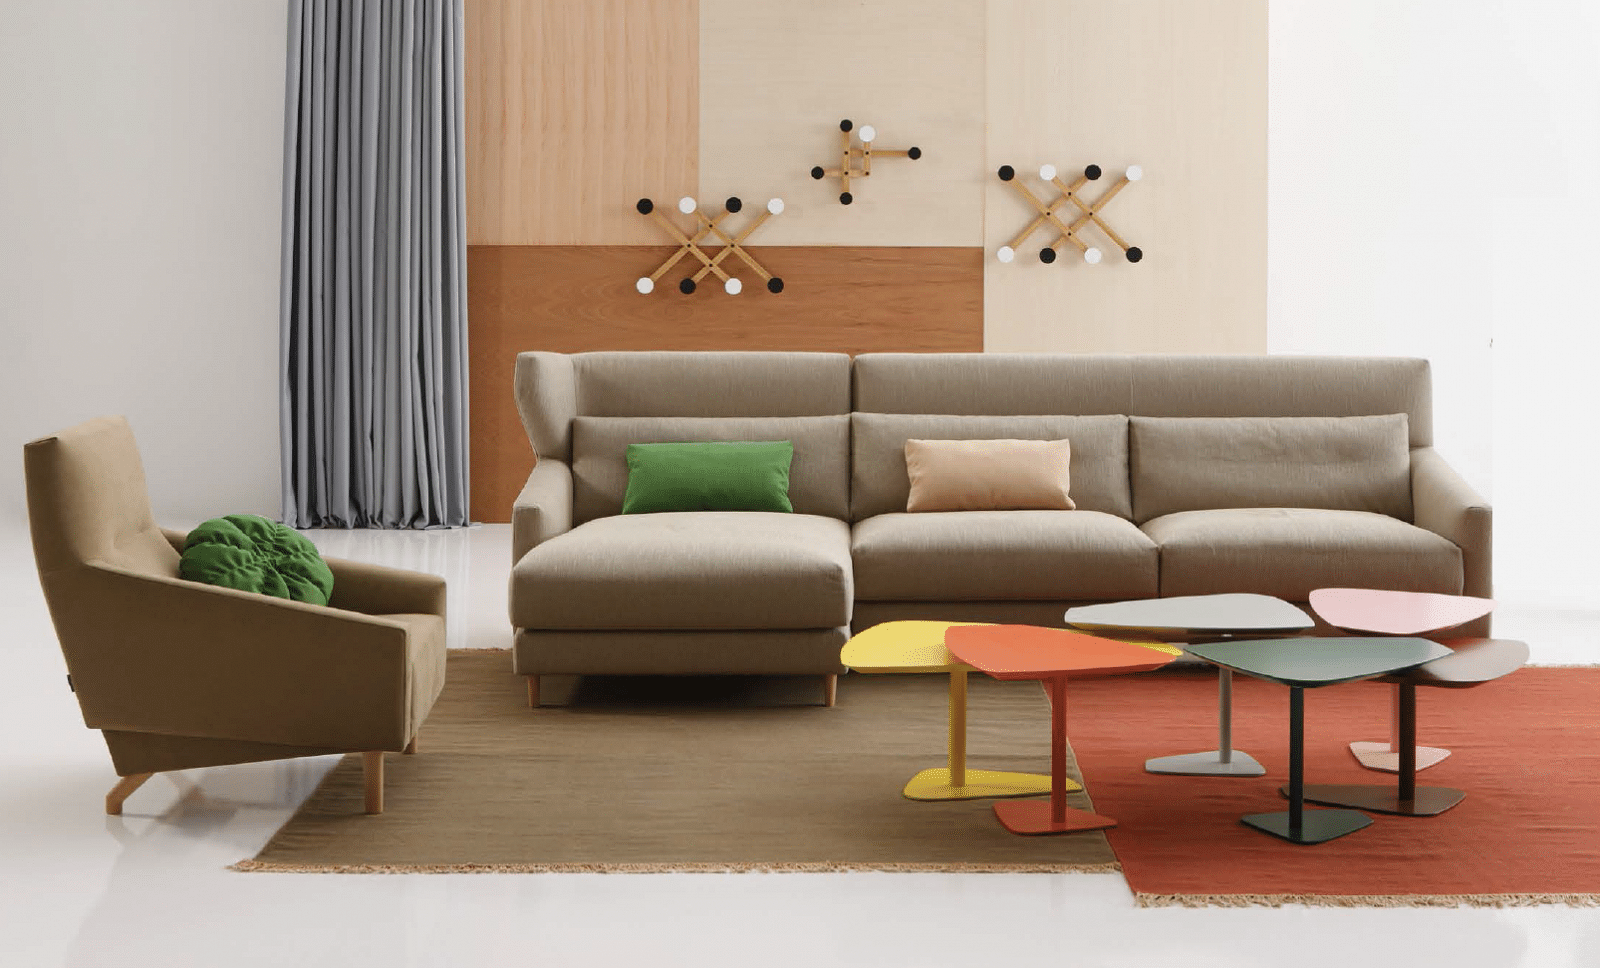 Win your choice of sancal for Dream house days furniture